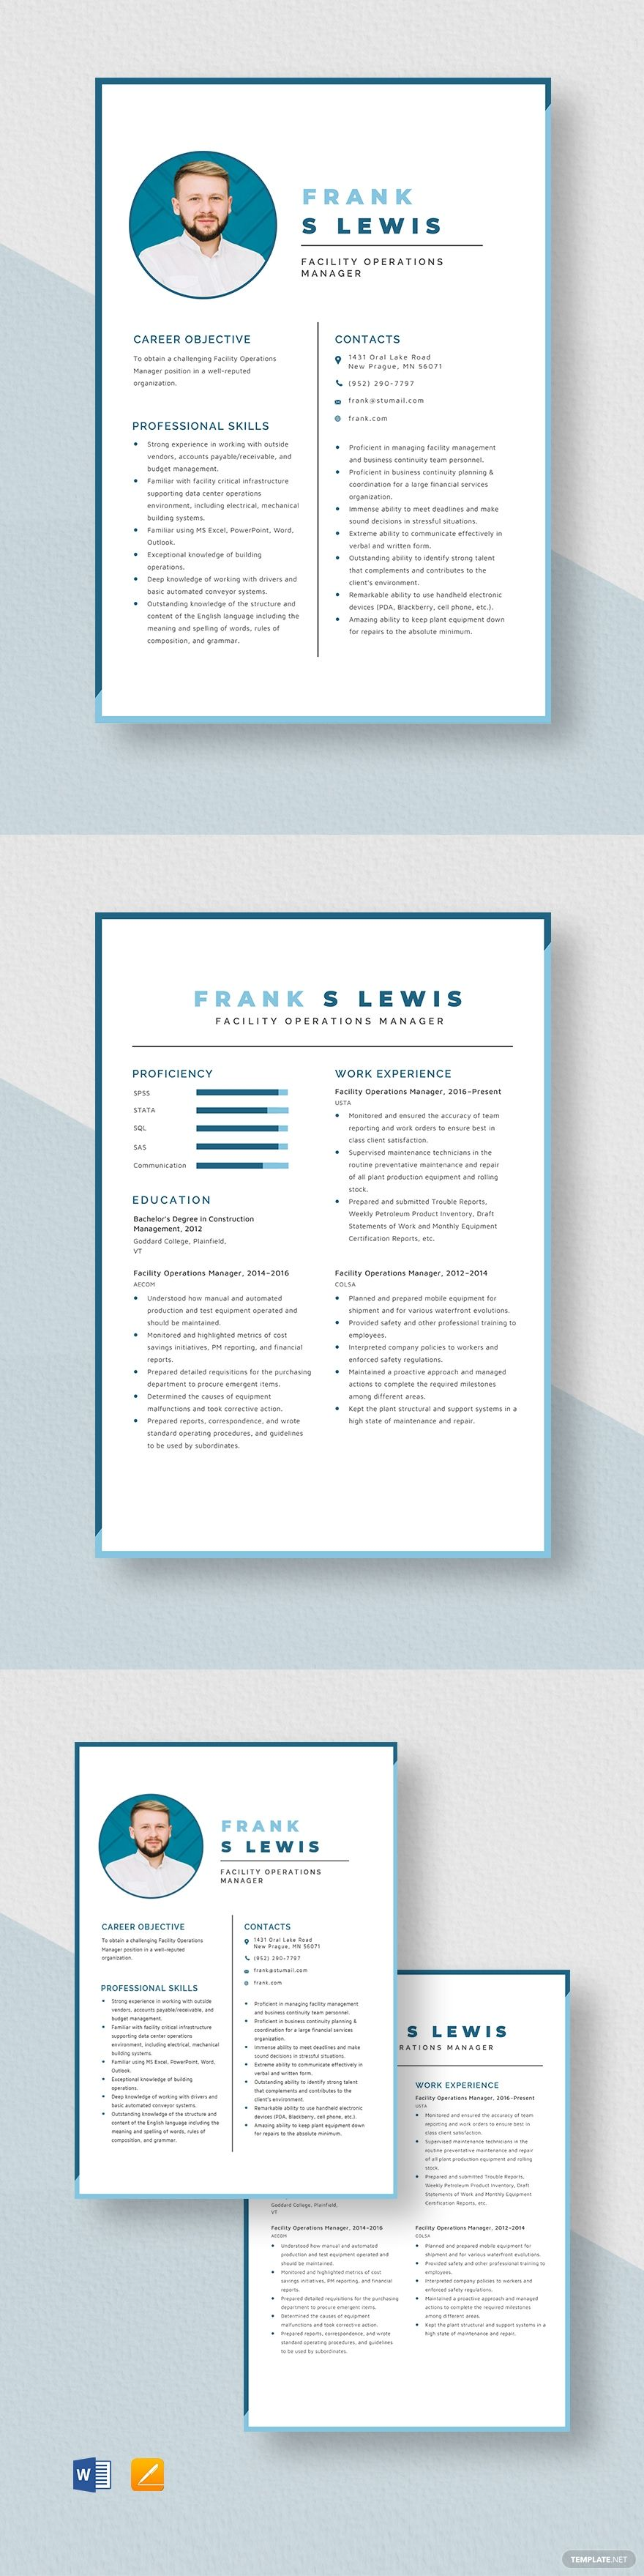 pin on website templates layout